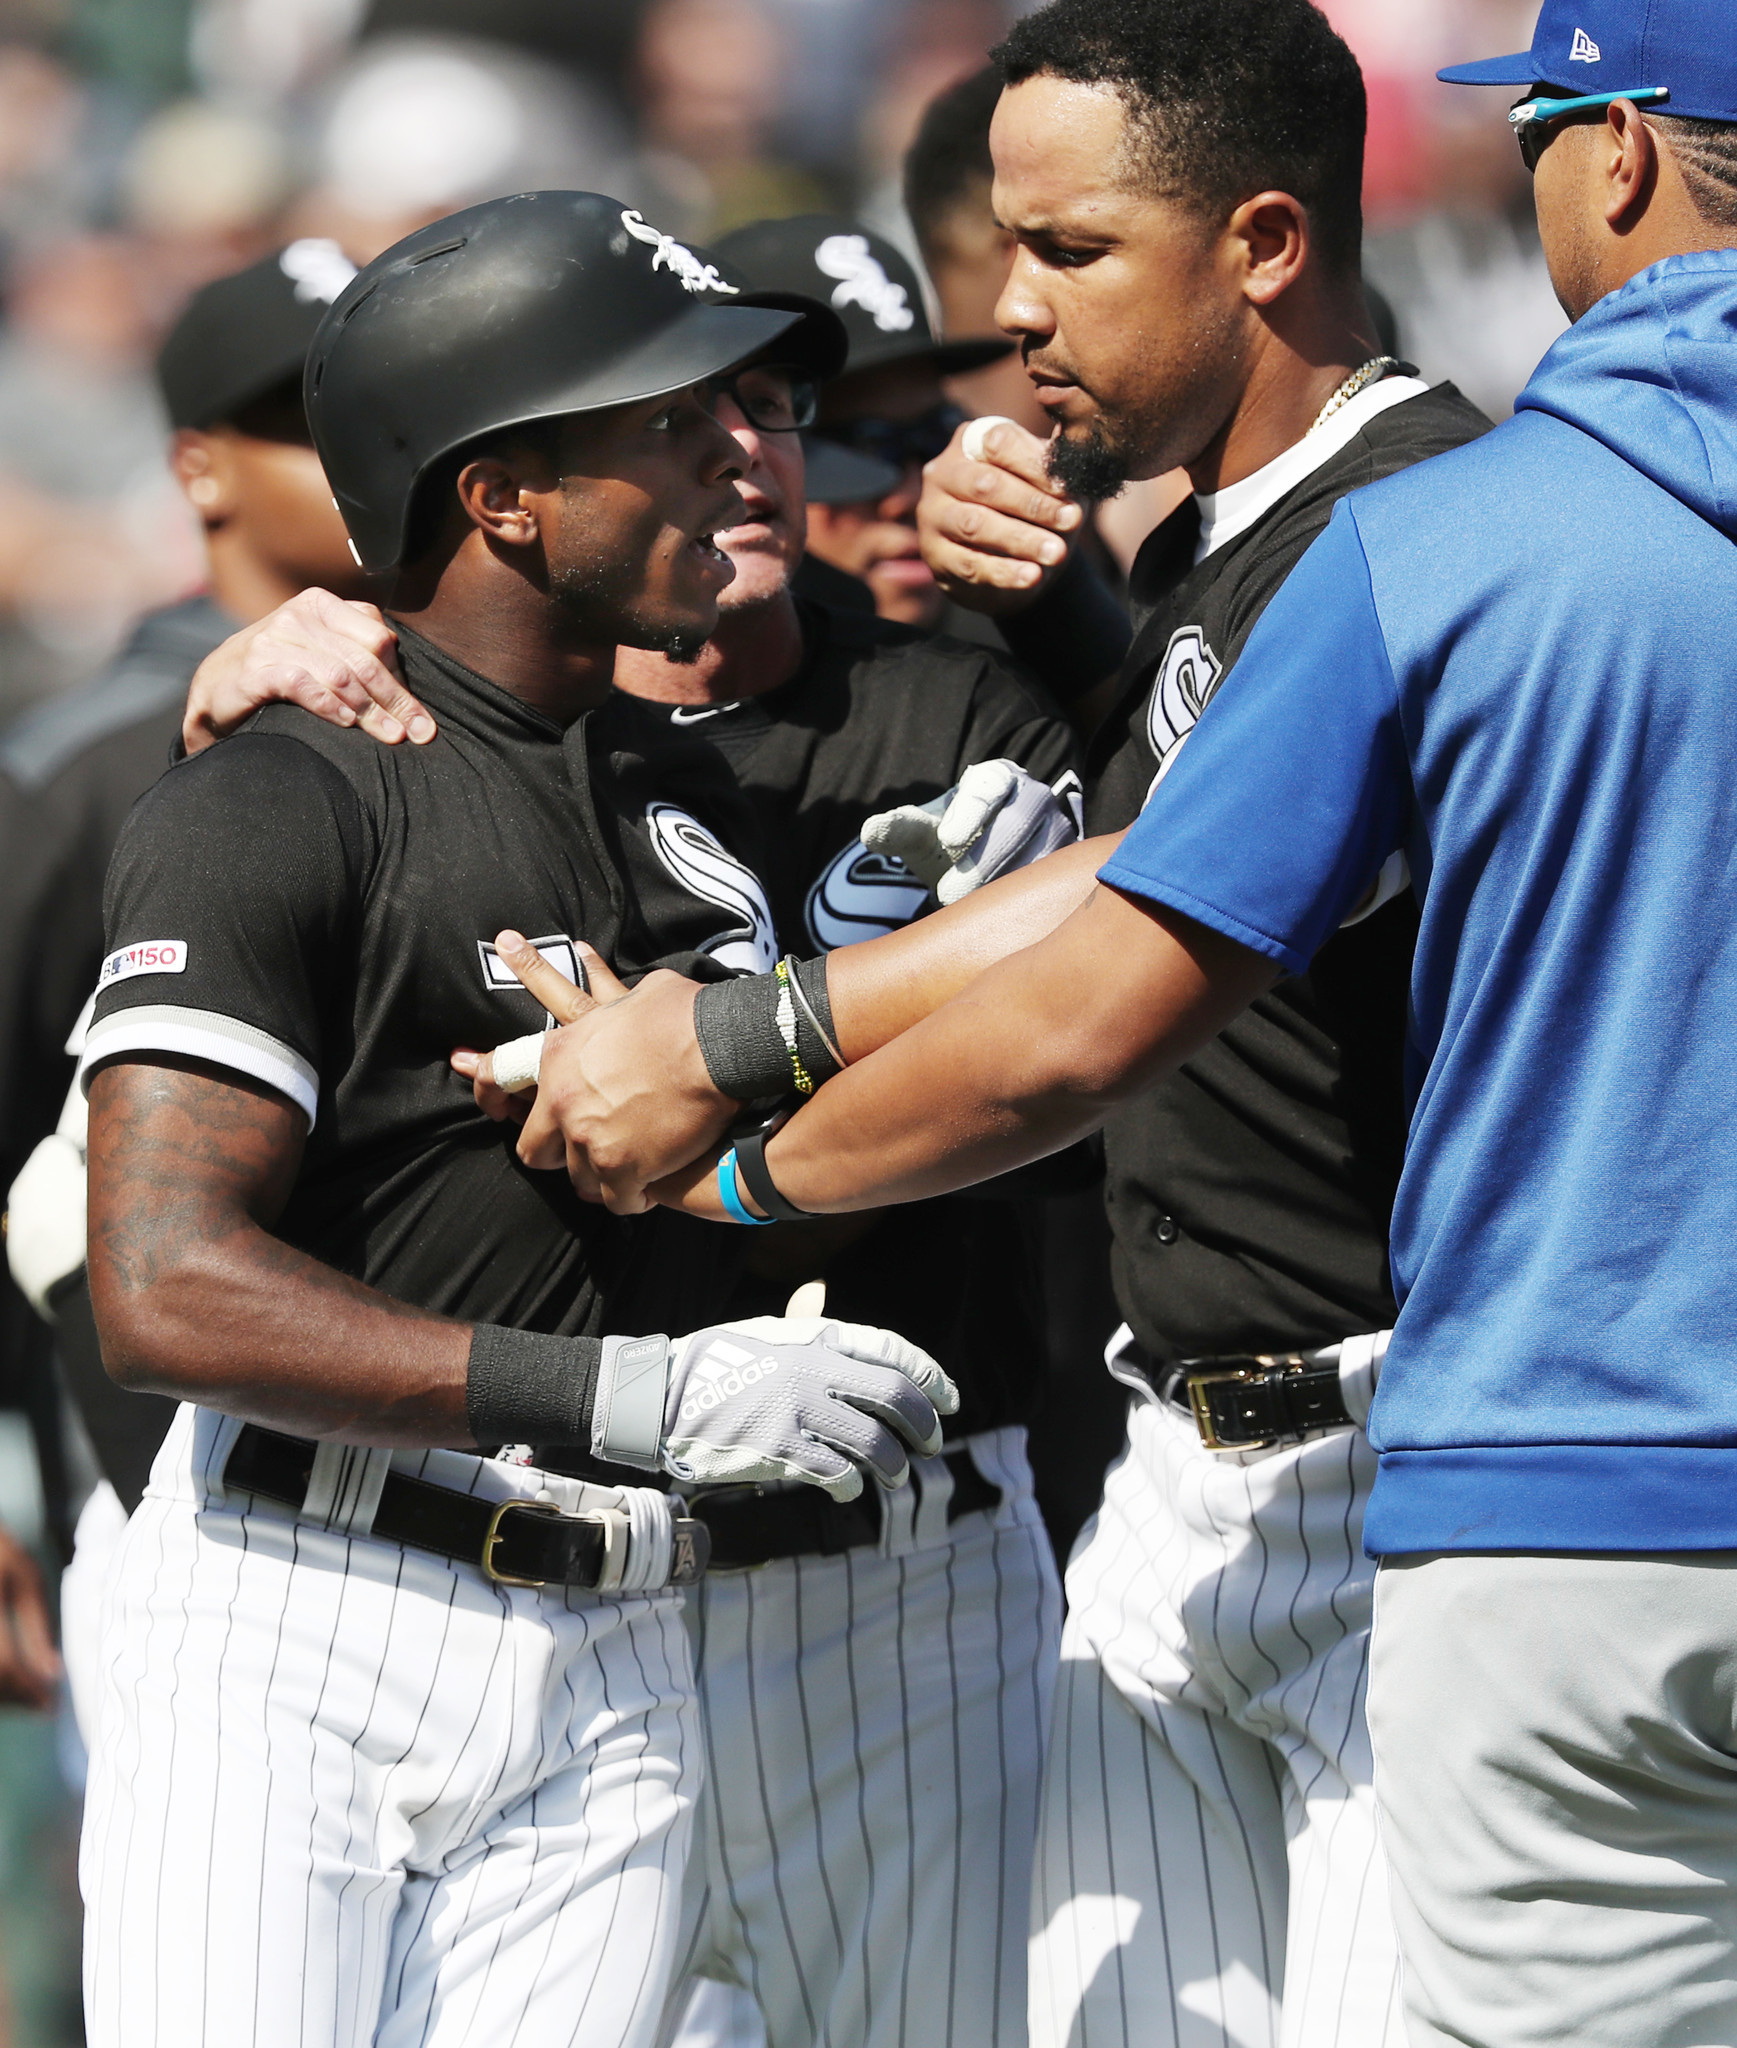 Weather forces postponement of White Sox-Tigers game, delaying Tim Anderson's return